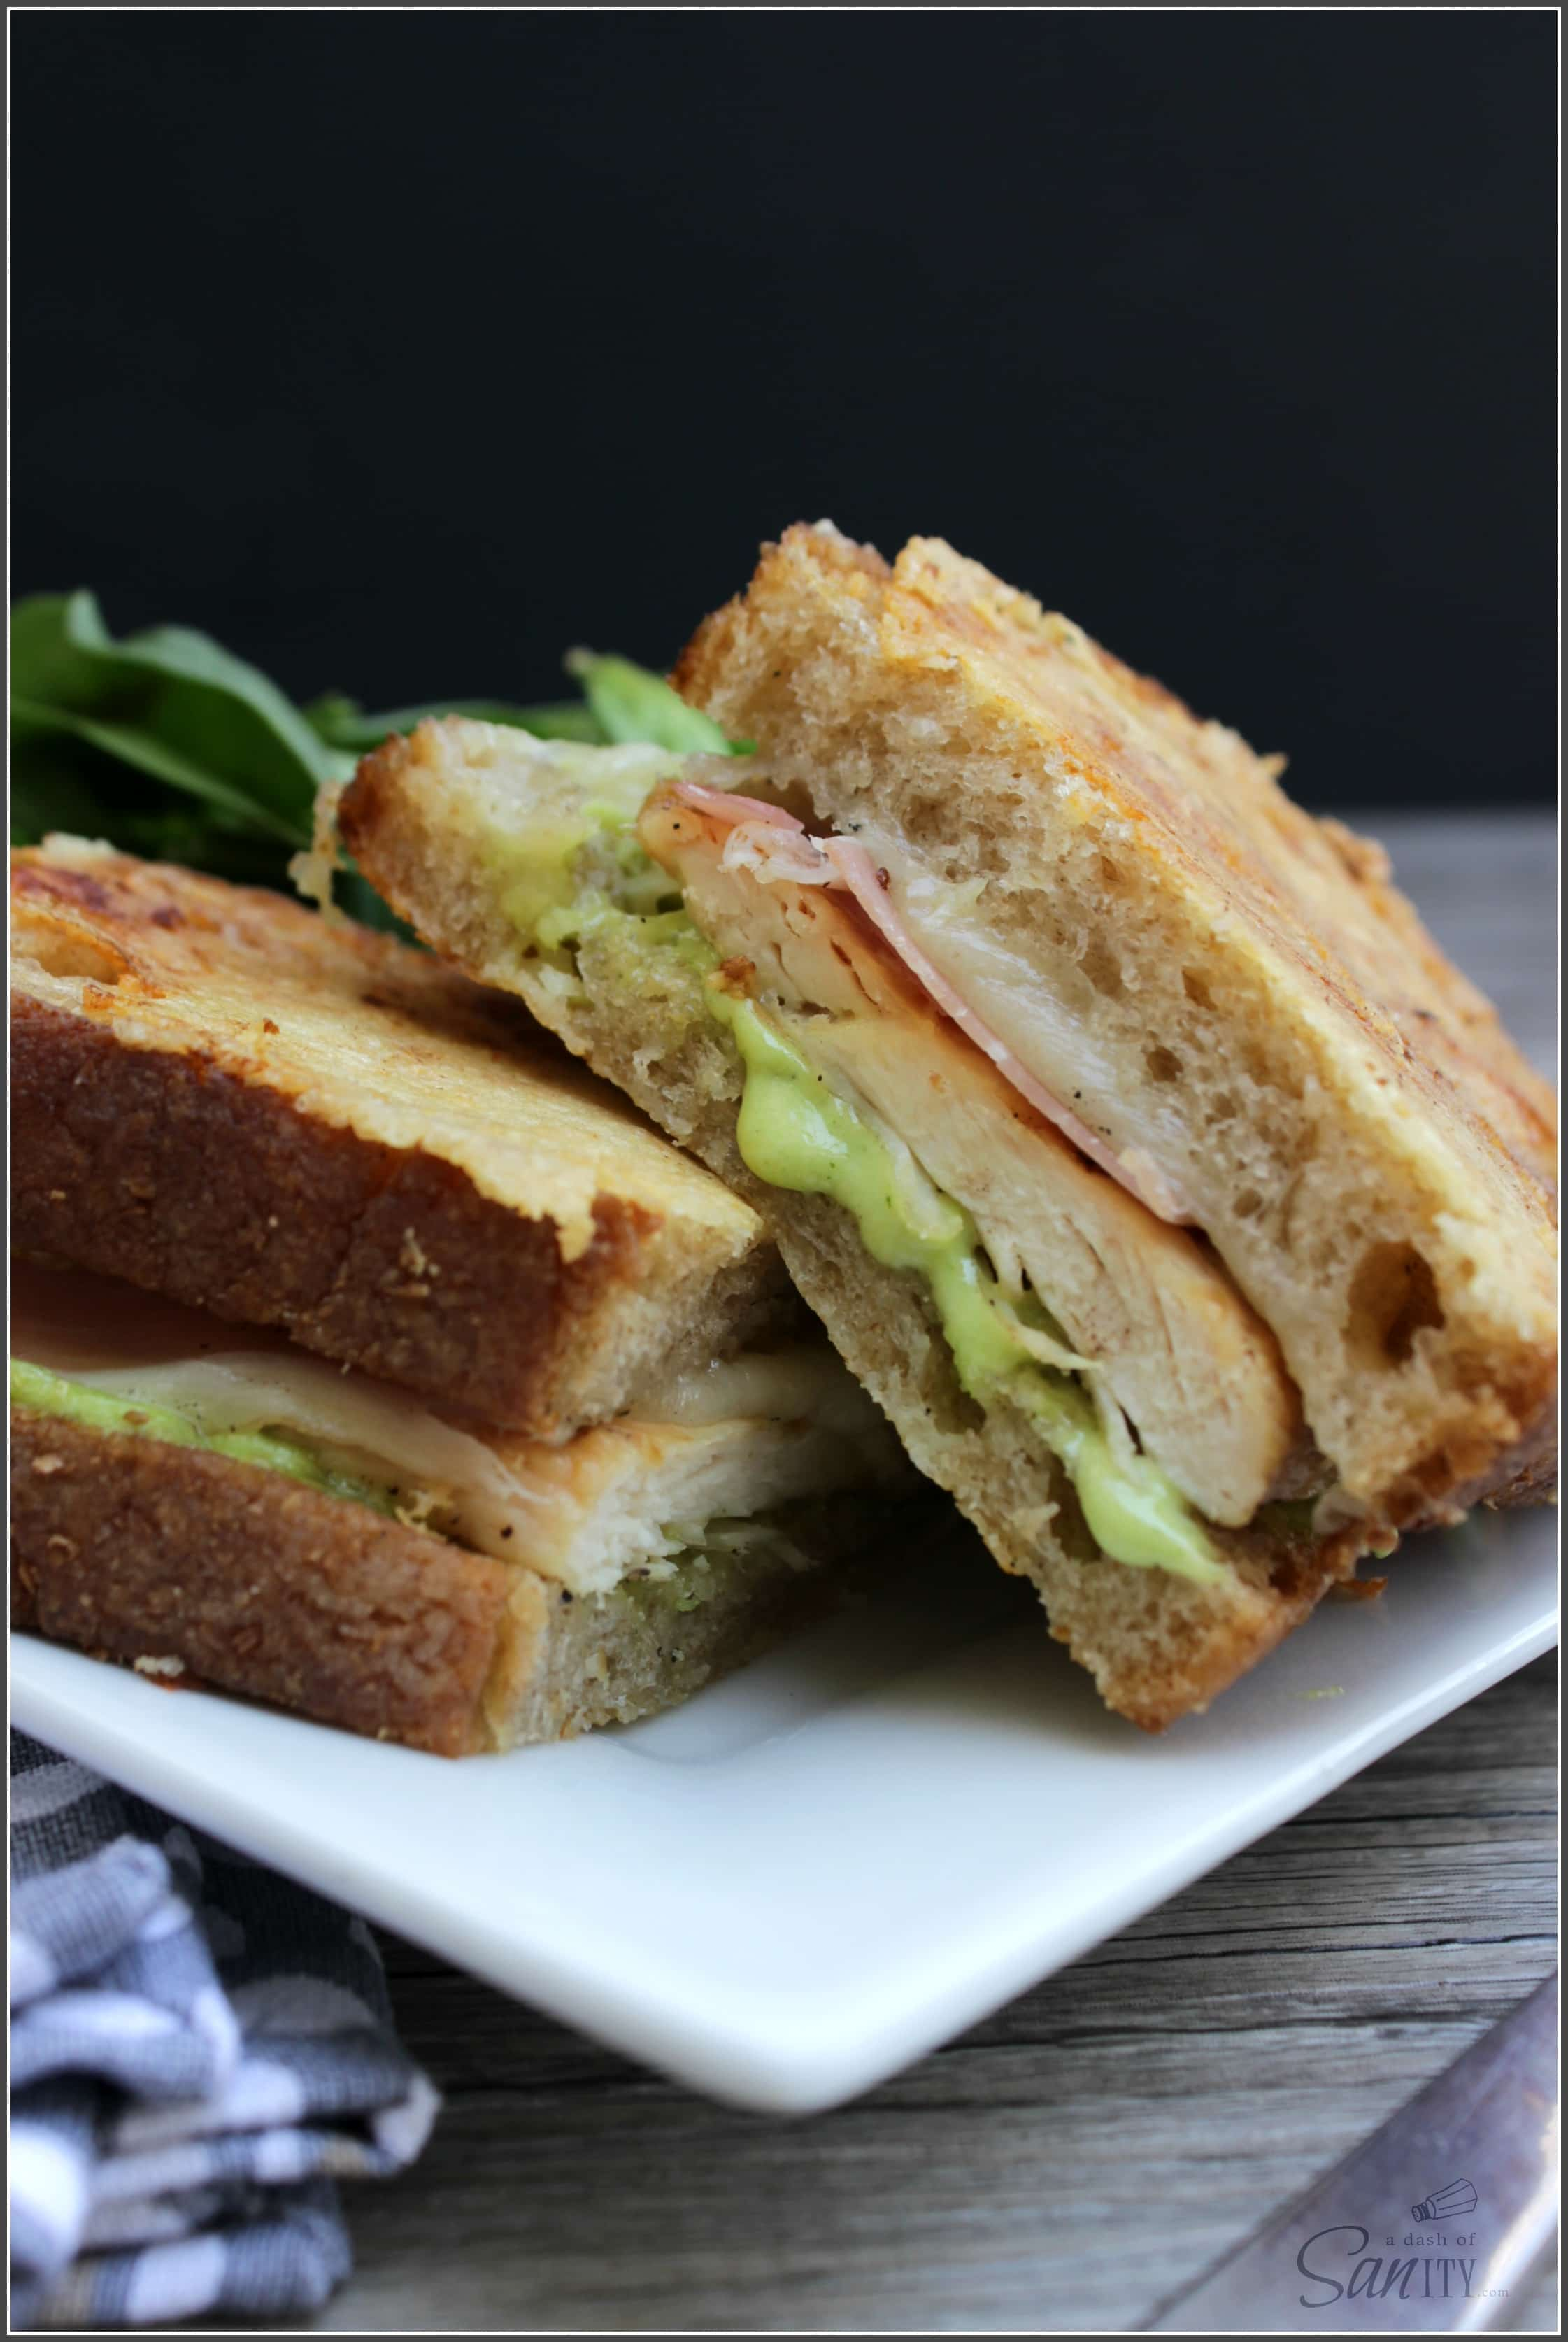 Grilled Chicken Carbonara Sandwich - delicious layers of flavors with homemade garlic aioli, pancetta, grilled chicken, and parmesan-crusted bread!